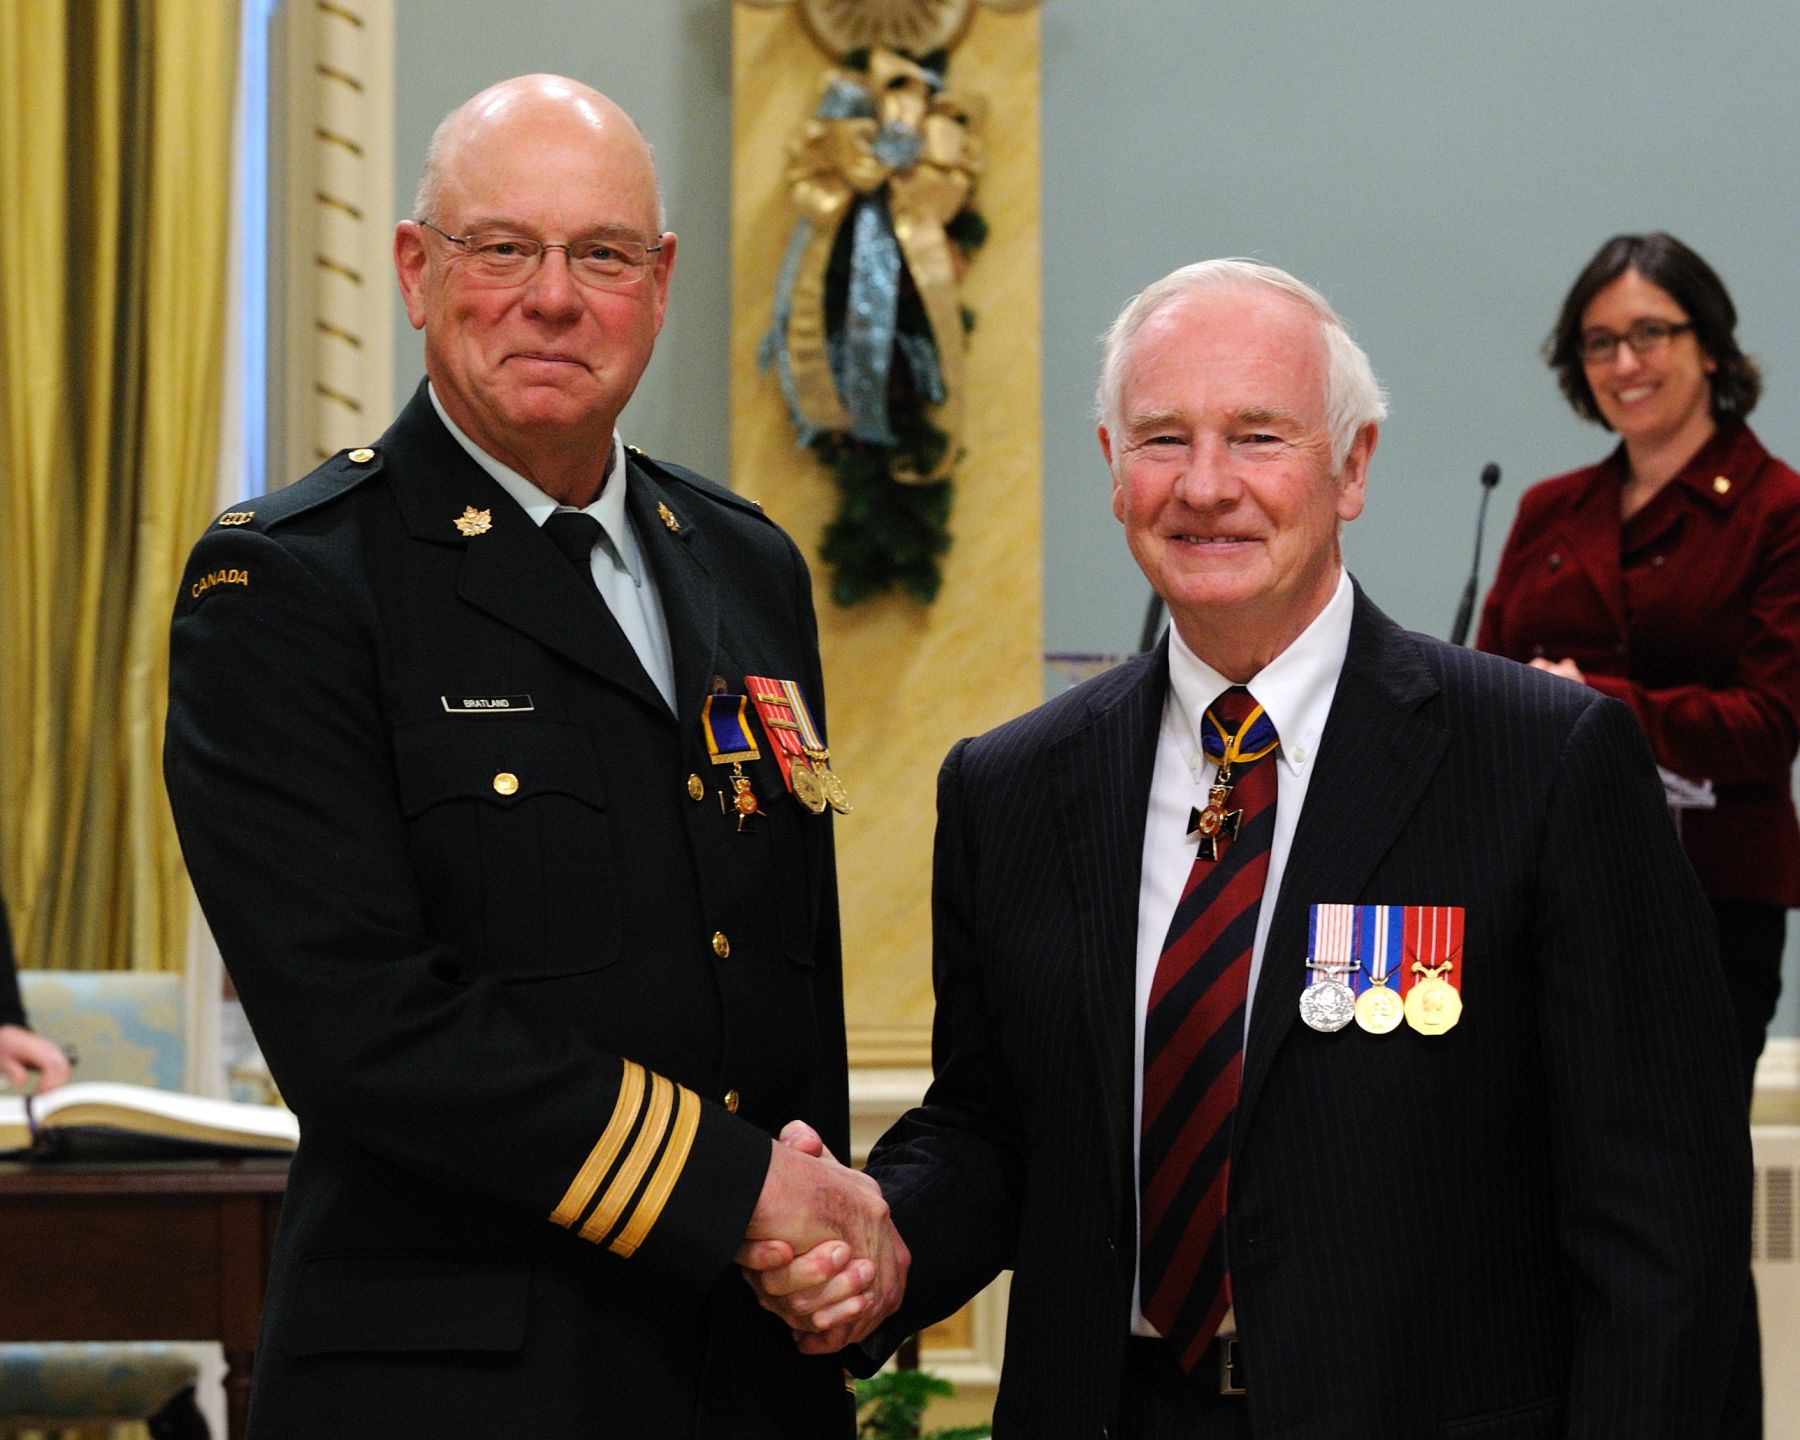 His Excellency presented the Order of Military Merit at the Officer level (O.M.M.) to Lieutenant-Colonel Allan Bratland, O.M.M., C.D., Regional Cadet Support Unit Prairie, Winnipeg, Manitoba.